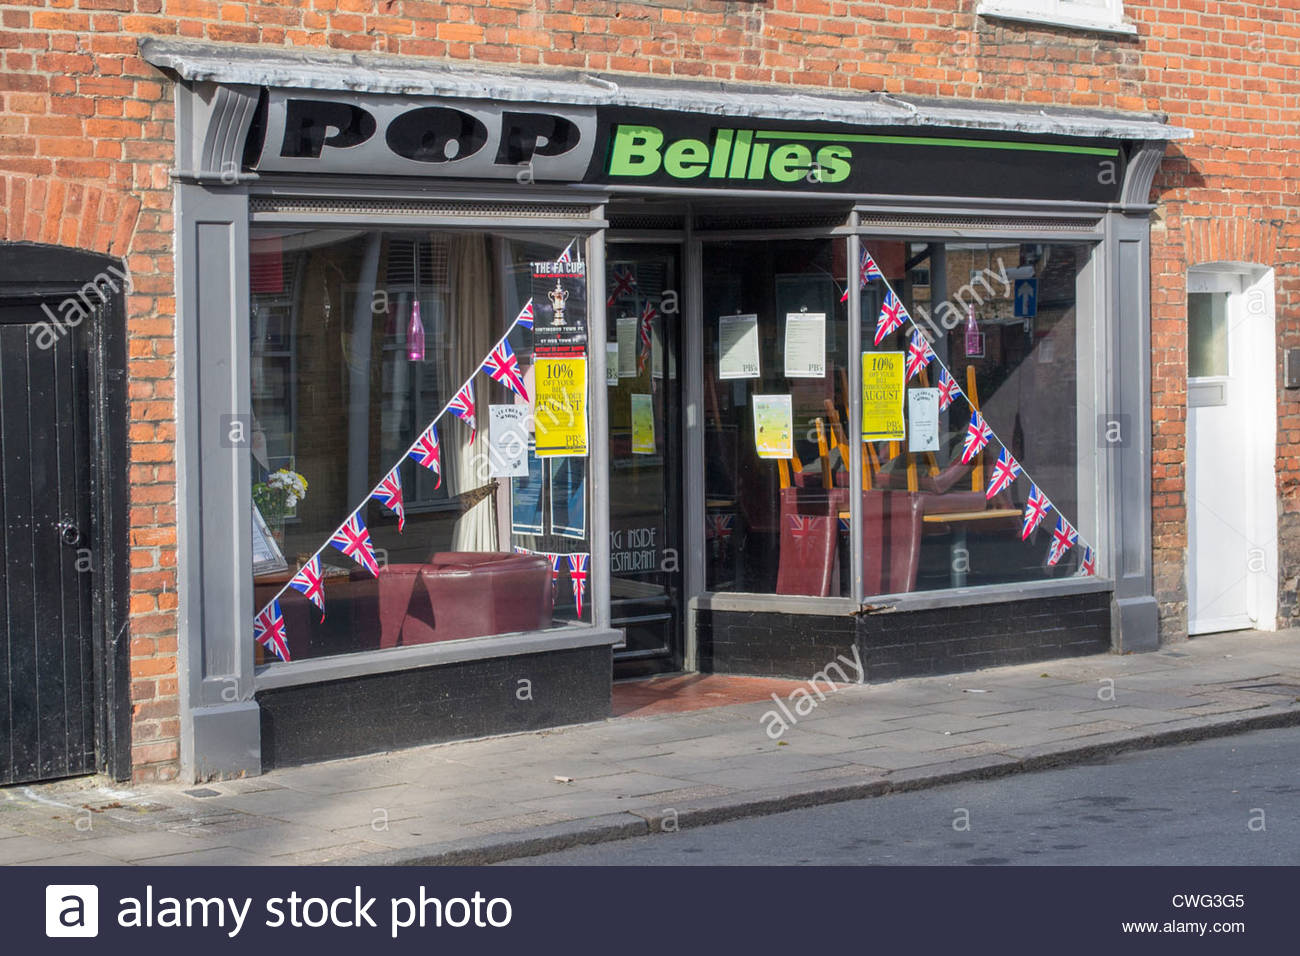 Pop Bellies local cafe in Huntingdon High Street displaying GB bunting in the window. - Stock Image